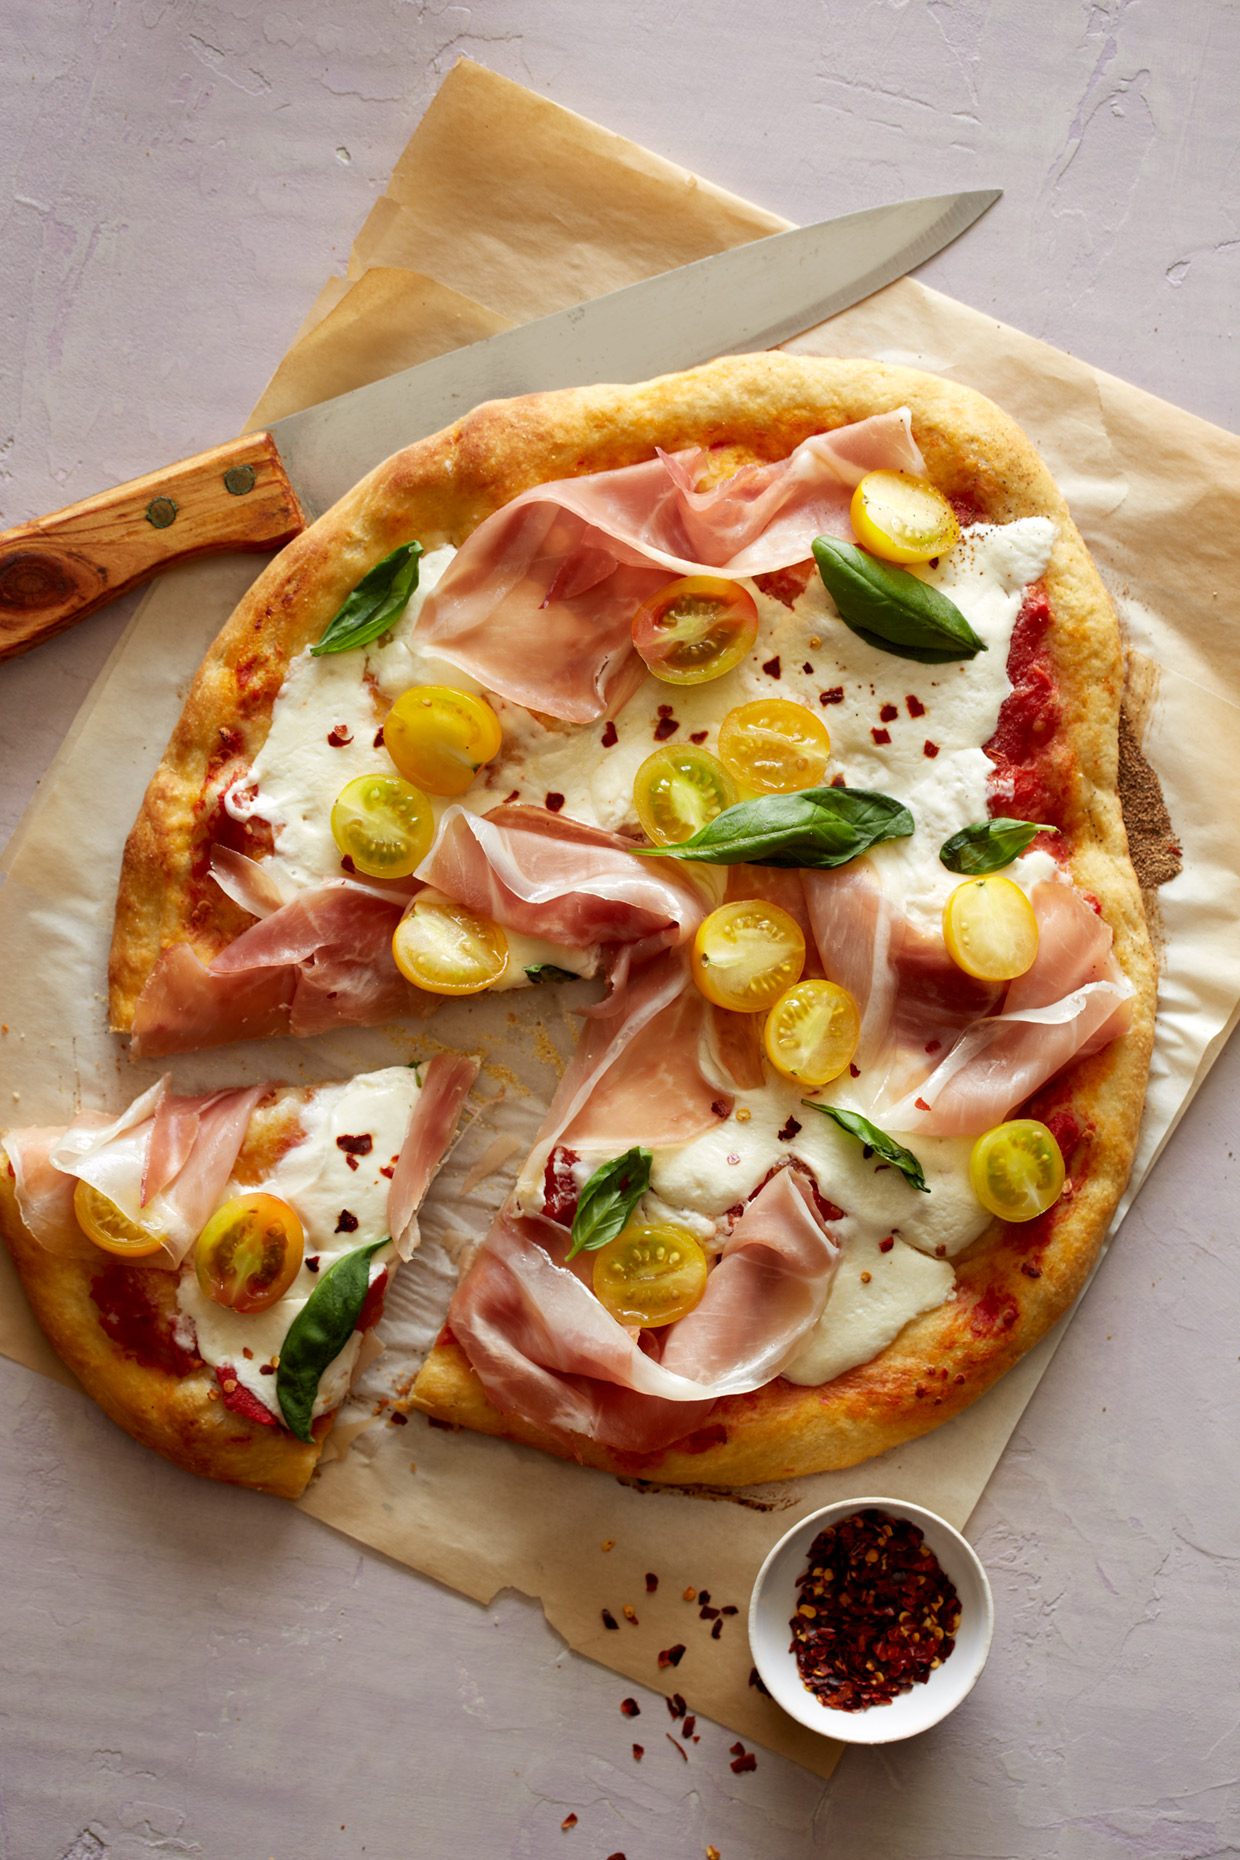 Pizza by Teri Lyn Fisher a commercial food and product photographer